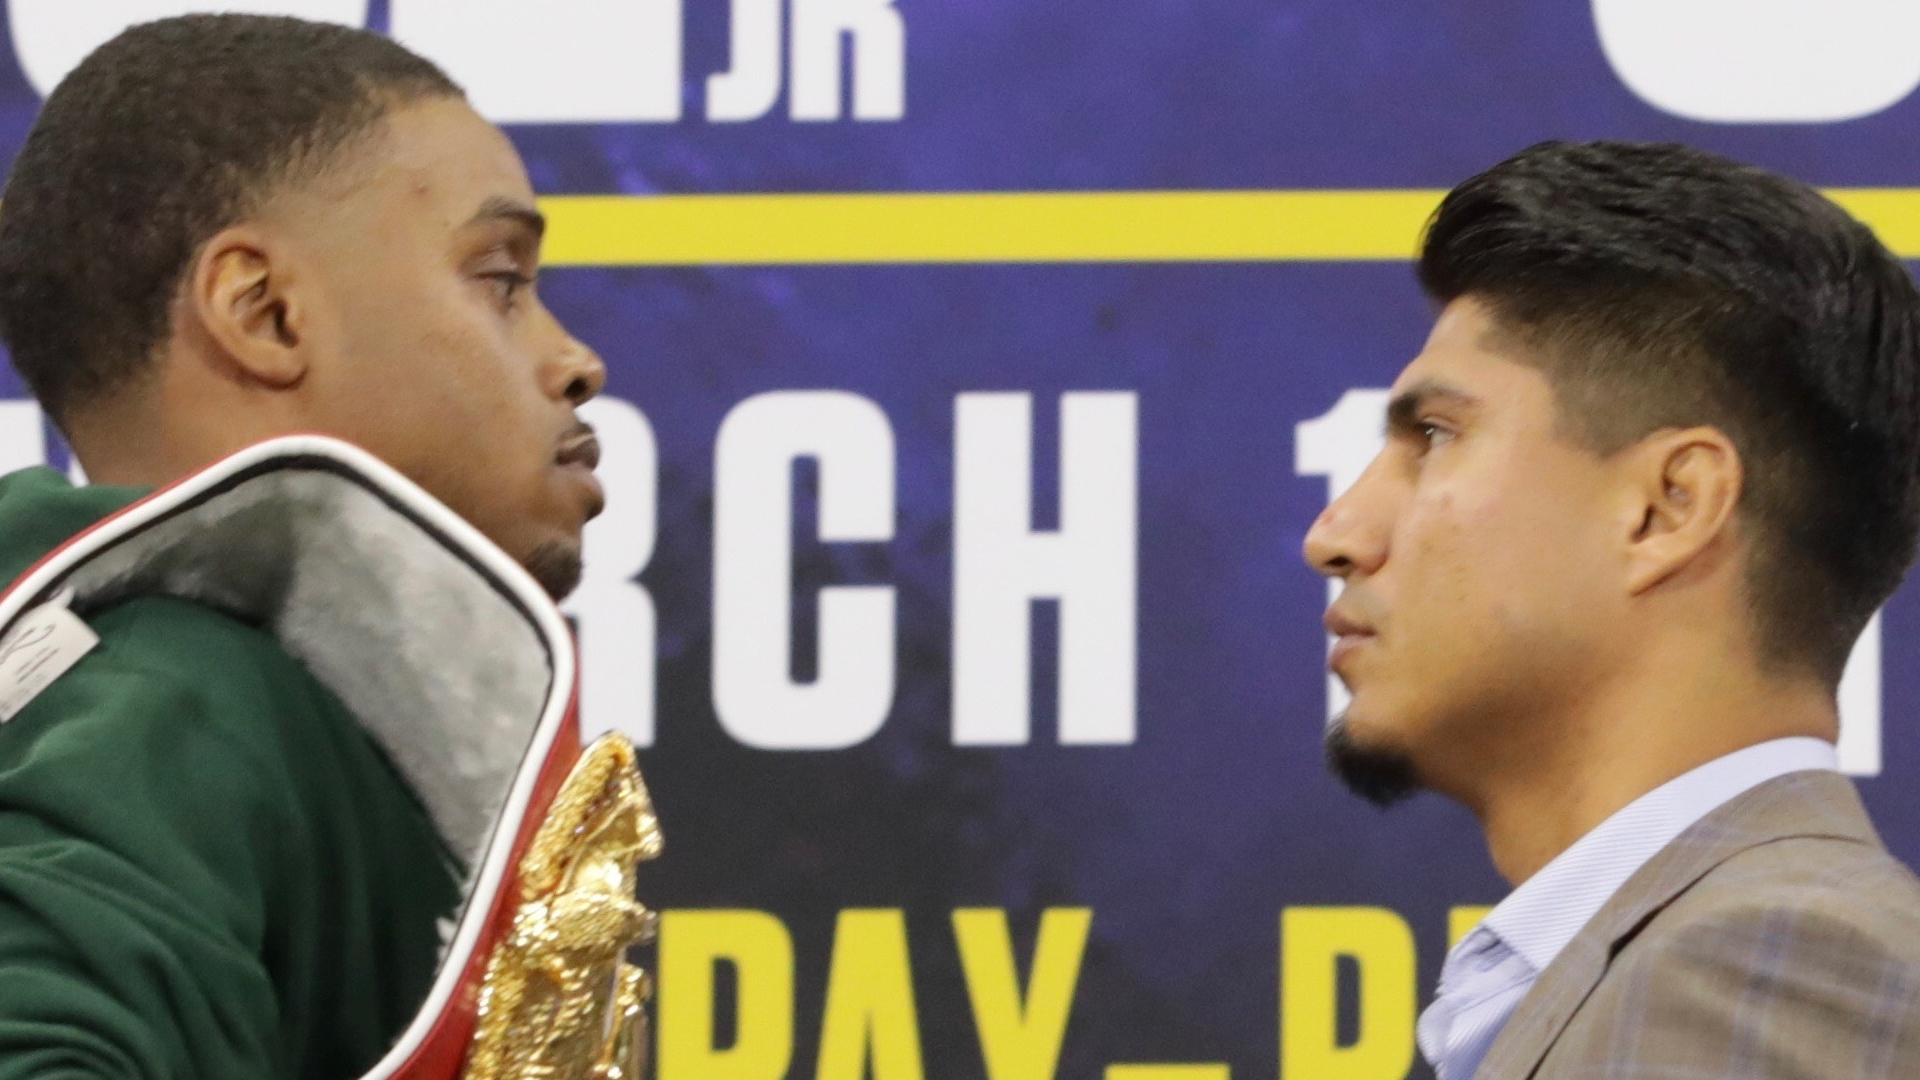 Errol Spence Jr. On Mikey Garcia: